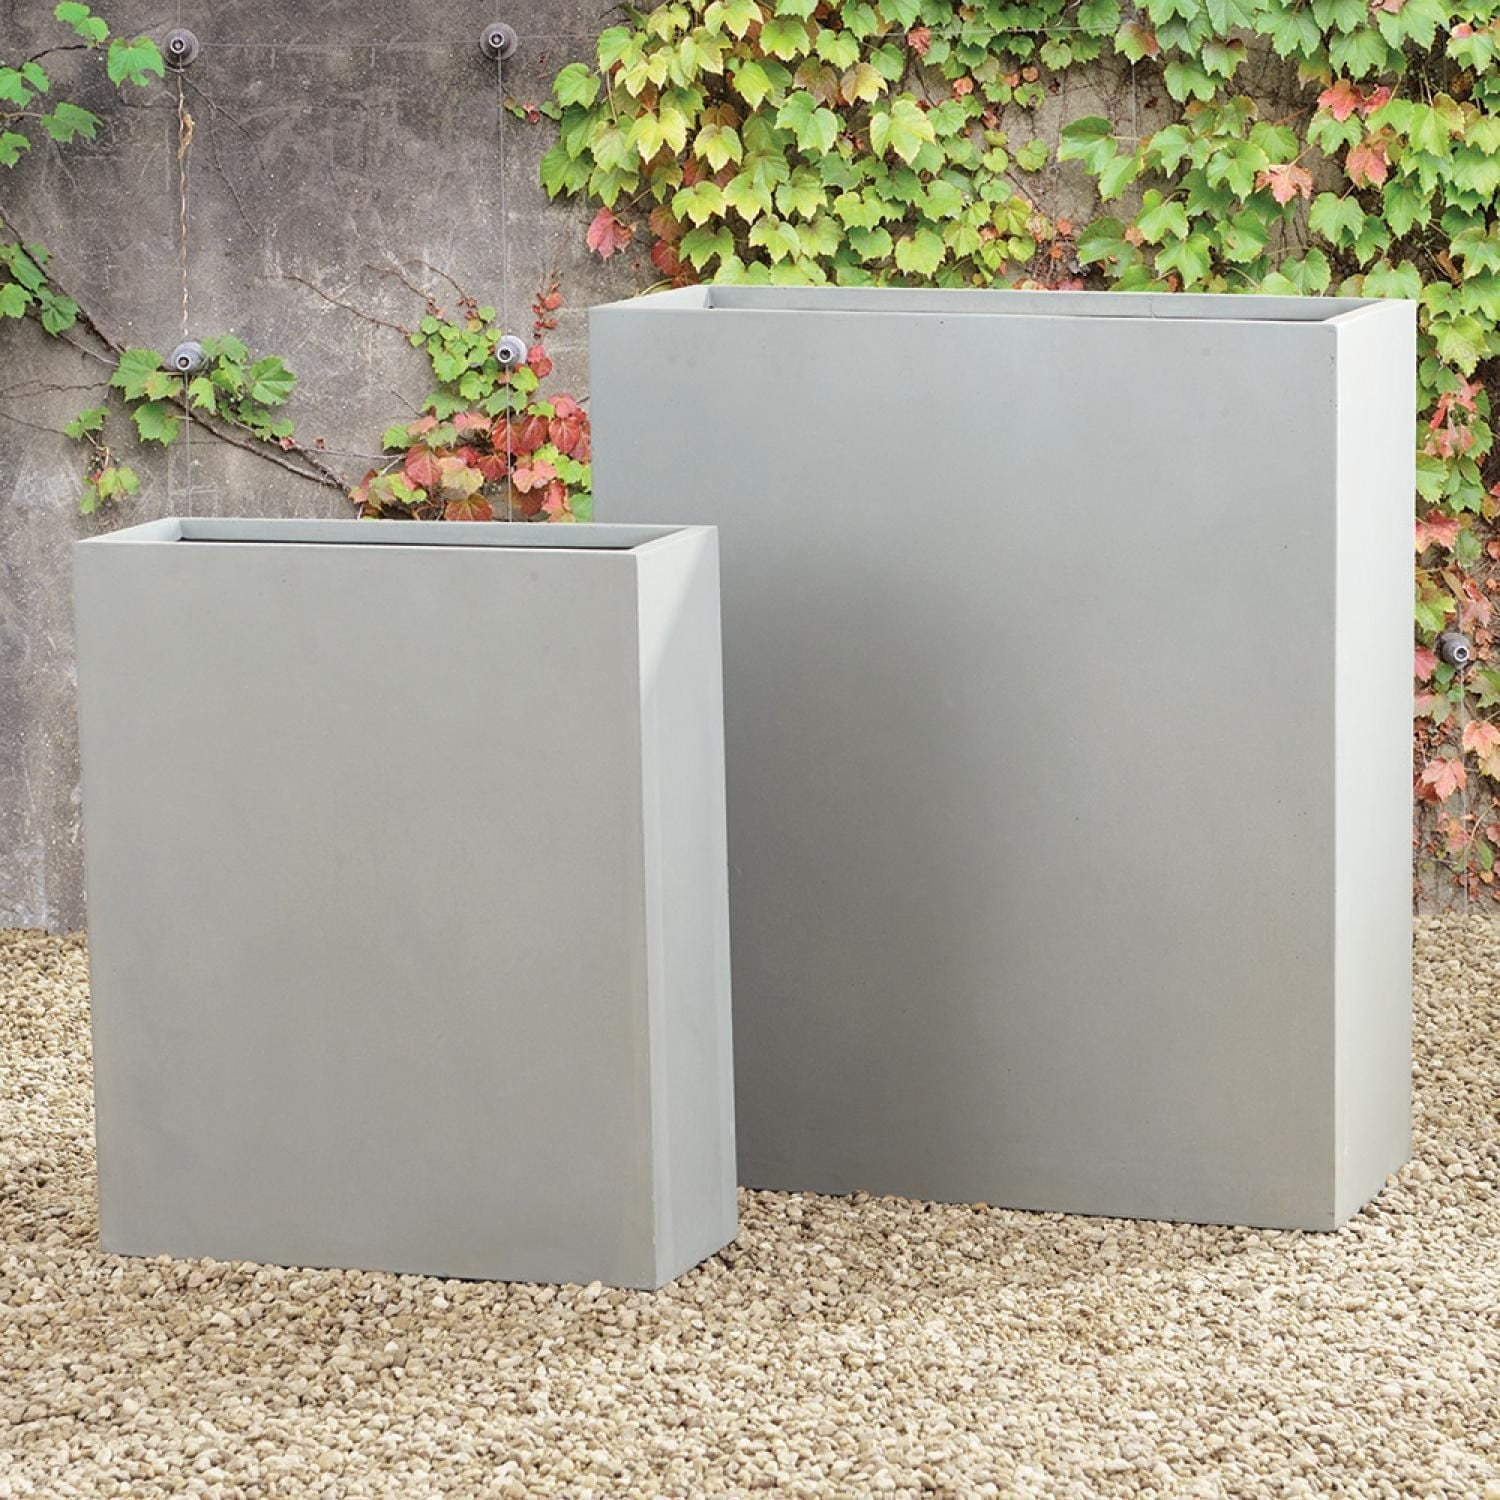 Tall Narrow Planters With A Light Gray